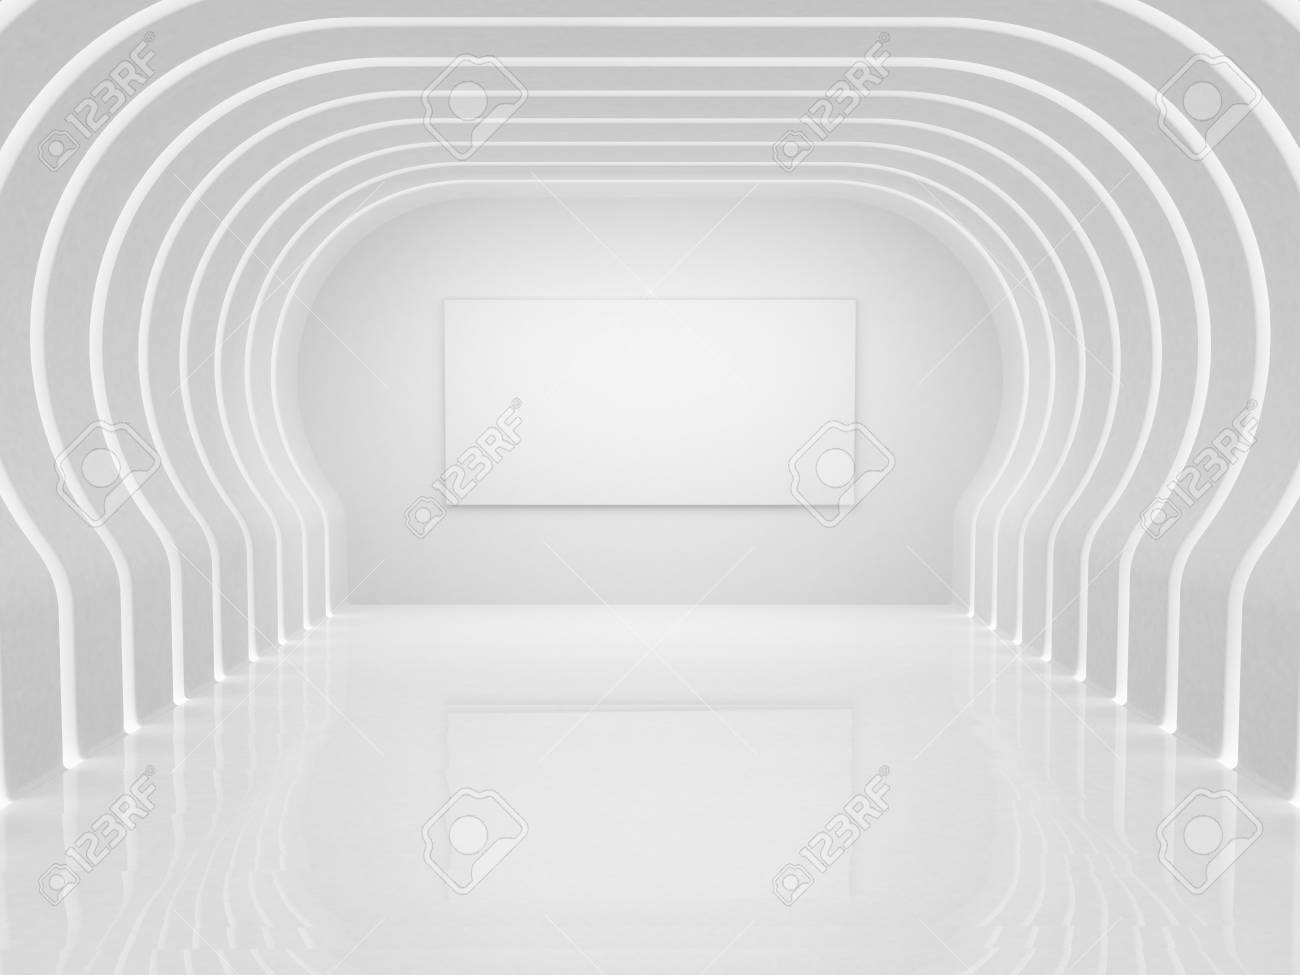 Modern illuminated hall with frame Stock Photo - 9325115